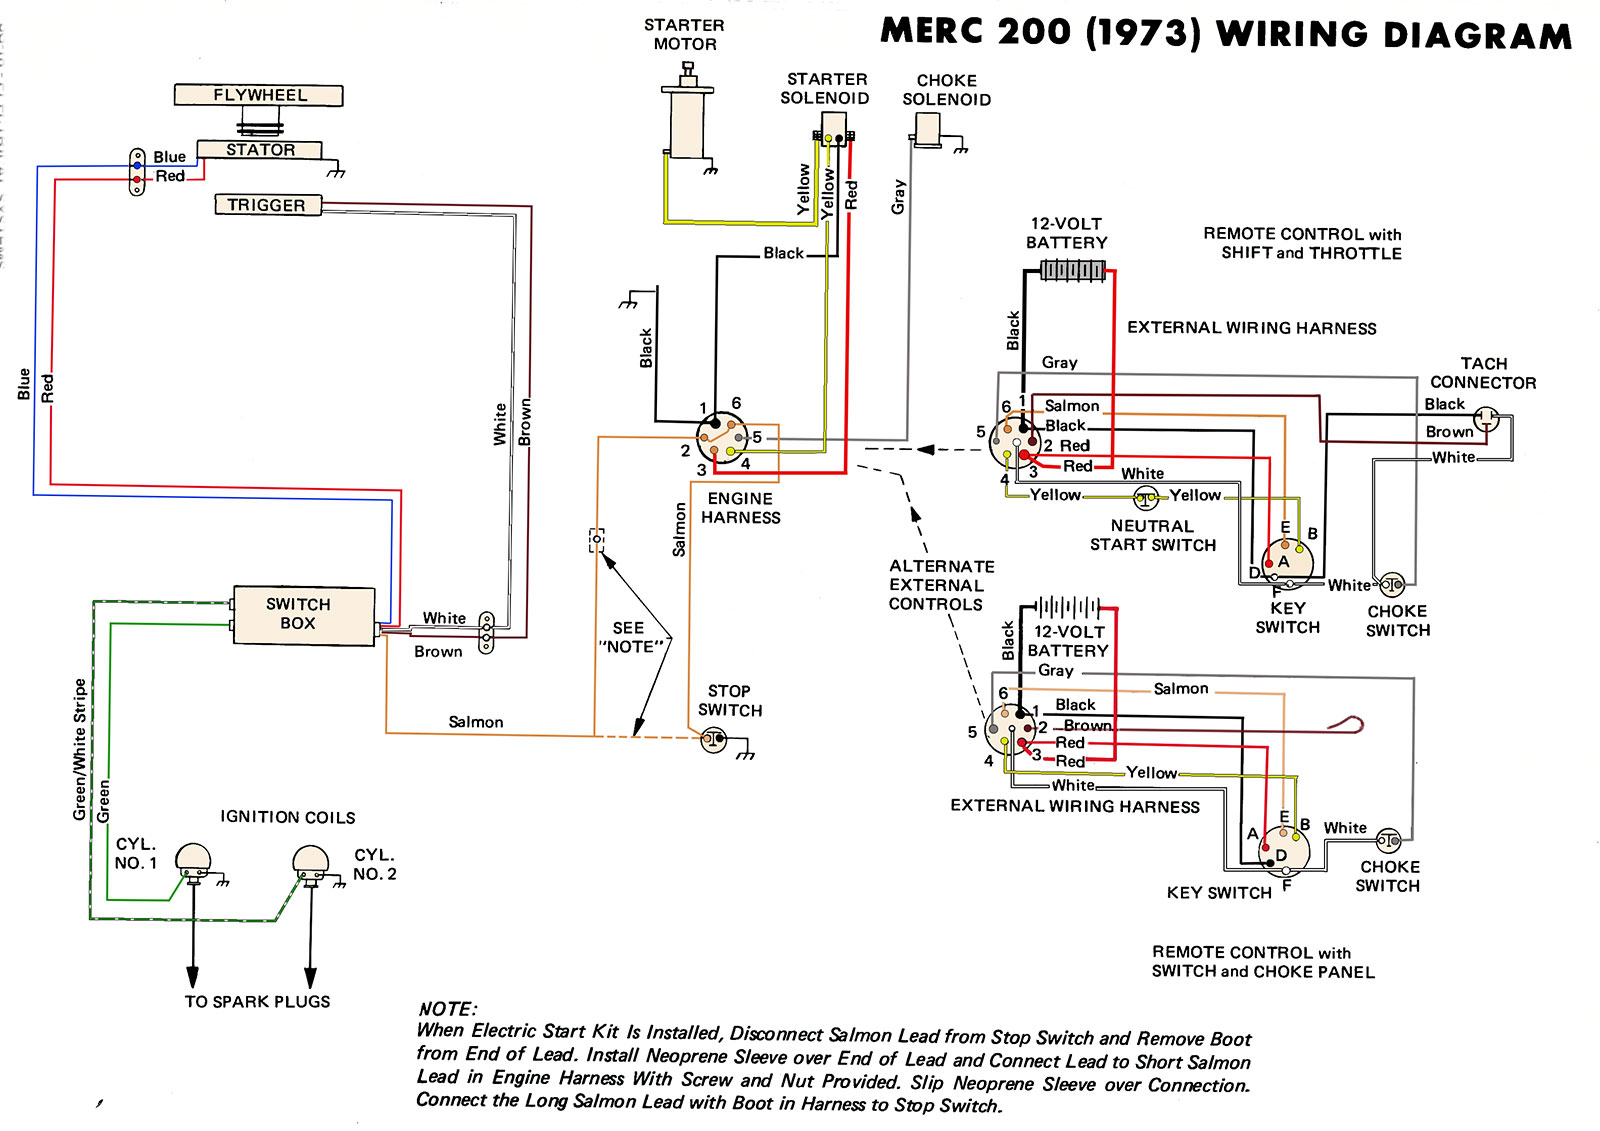 hight resolution of 1979 johnson 35 hp outboard wiring diagram wiring diagram 1976 evinrude 35 hp wiring diagram 90 evinrude wiring diagram